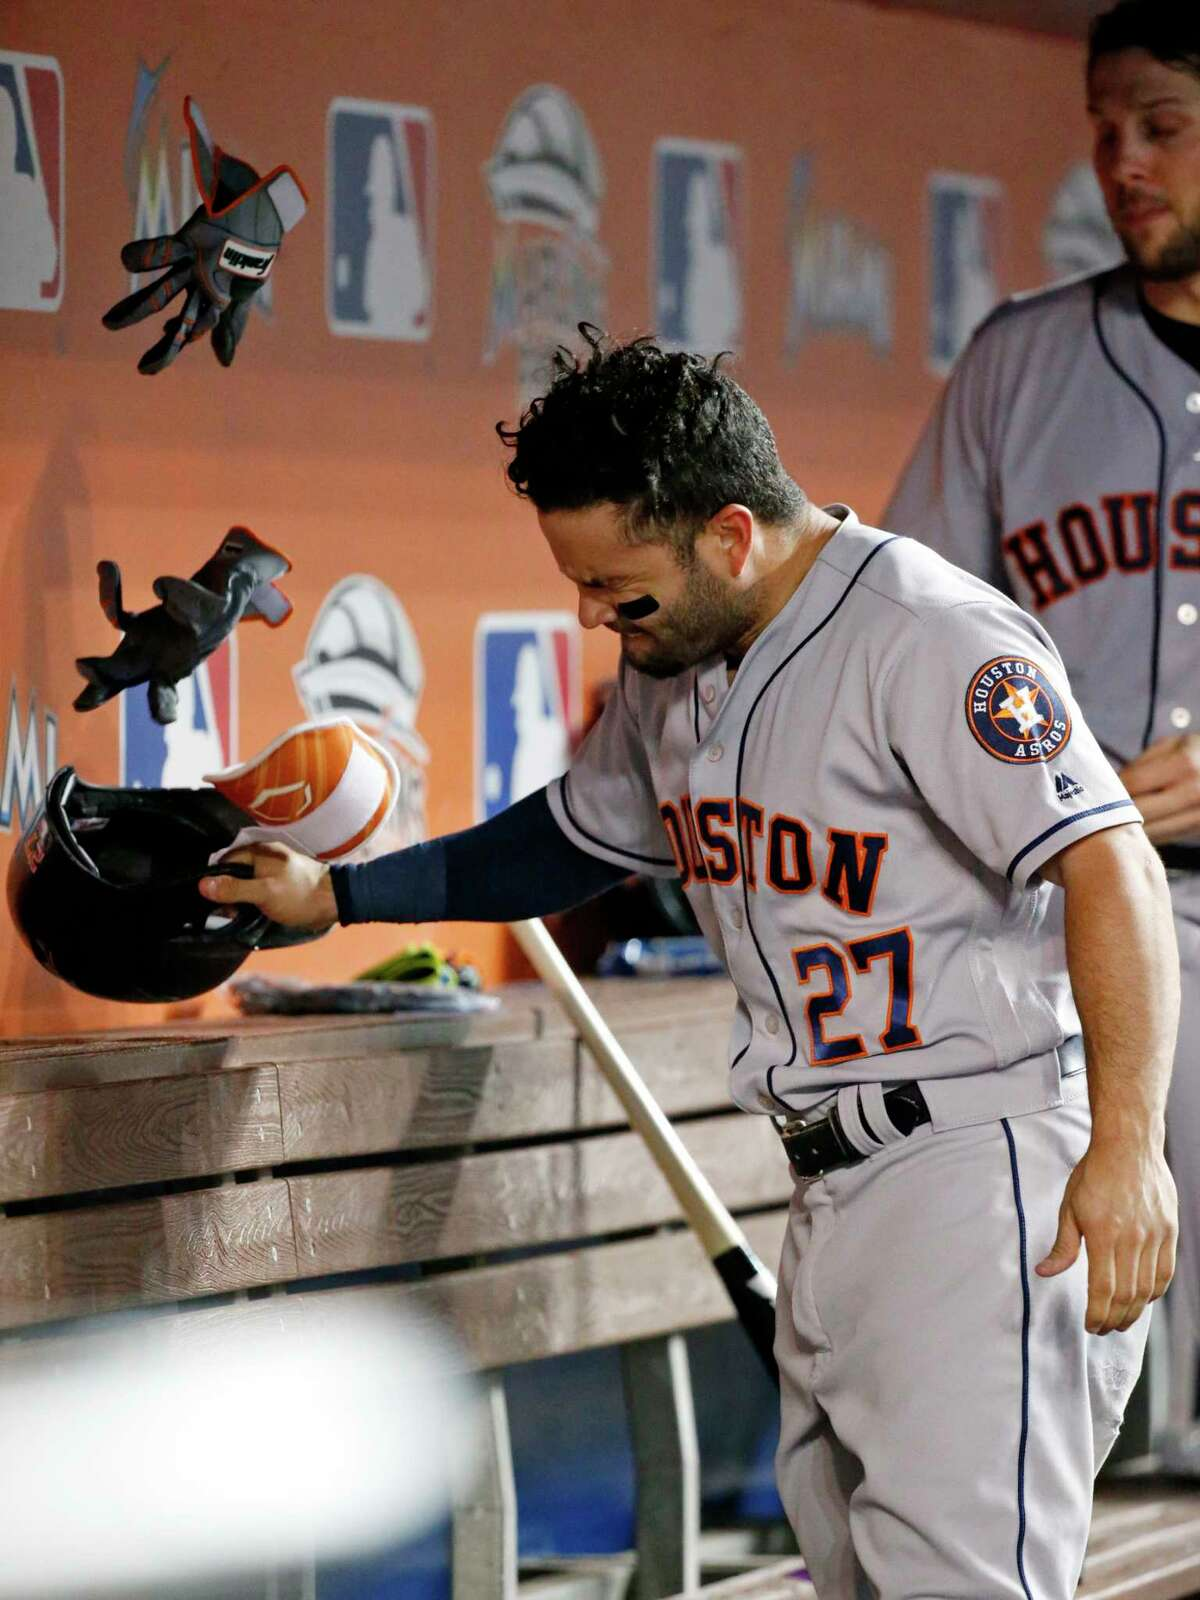 Houston Astros' Jose Altuve reacts after he grounded out during the fourth inning of the team's baseball game against the Miami Marlins, Tuesday, May 16, 2017, in Miami. (AP Photo/Wilfredo Lee)